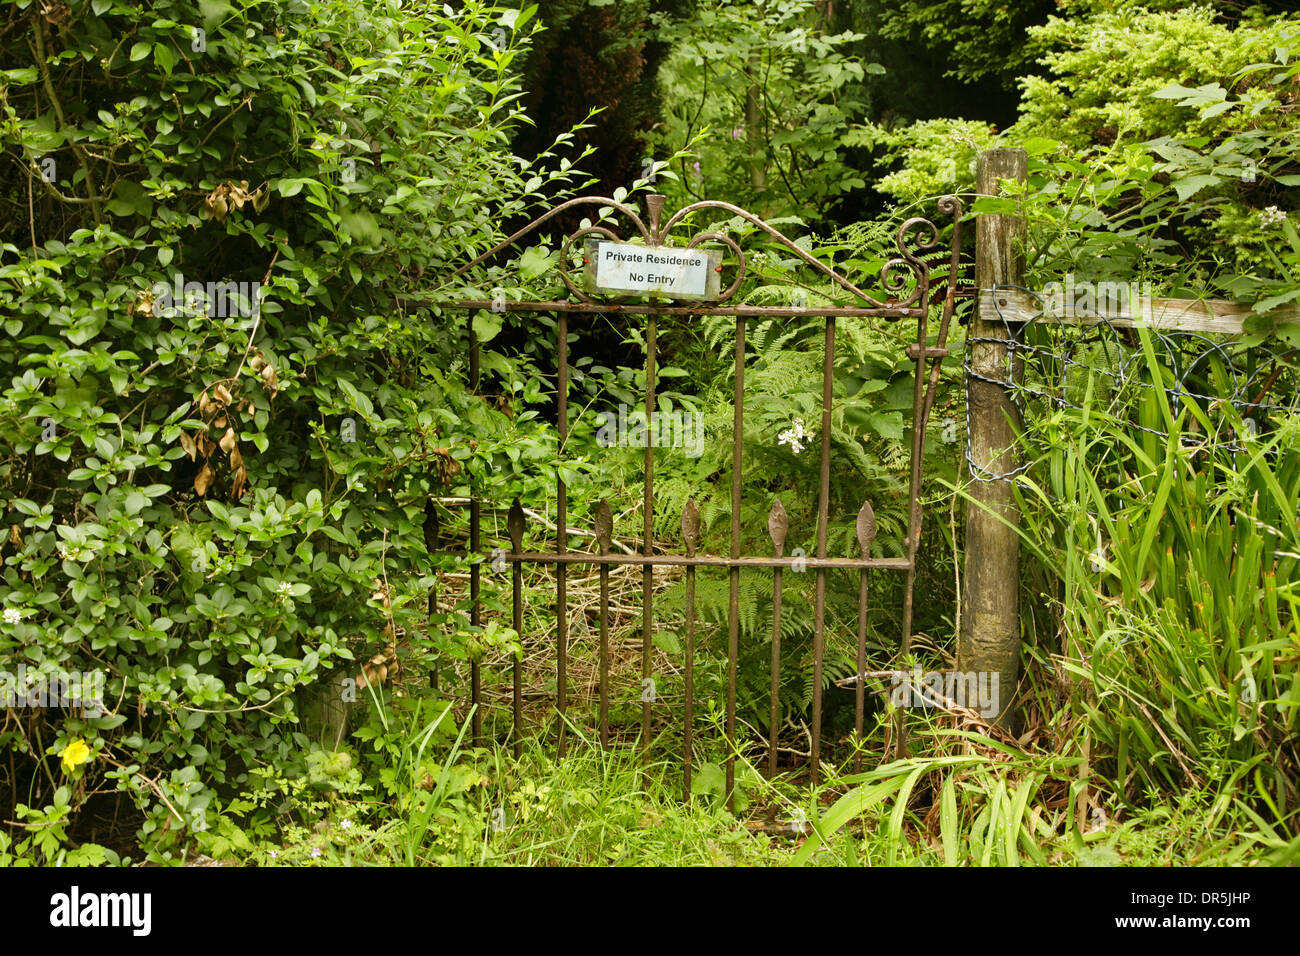 No Entry Sign On Old Wrought Iron Front Gate Of Very Overgrown Garden.    Stock